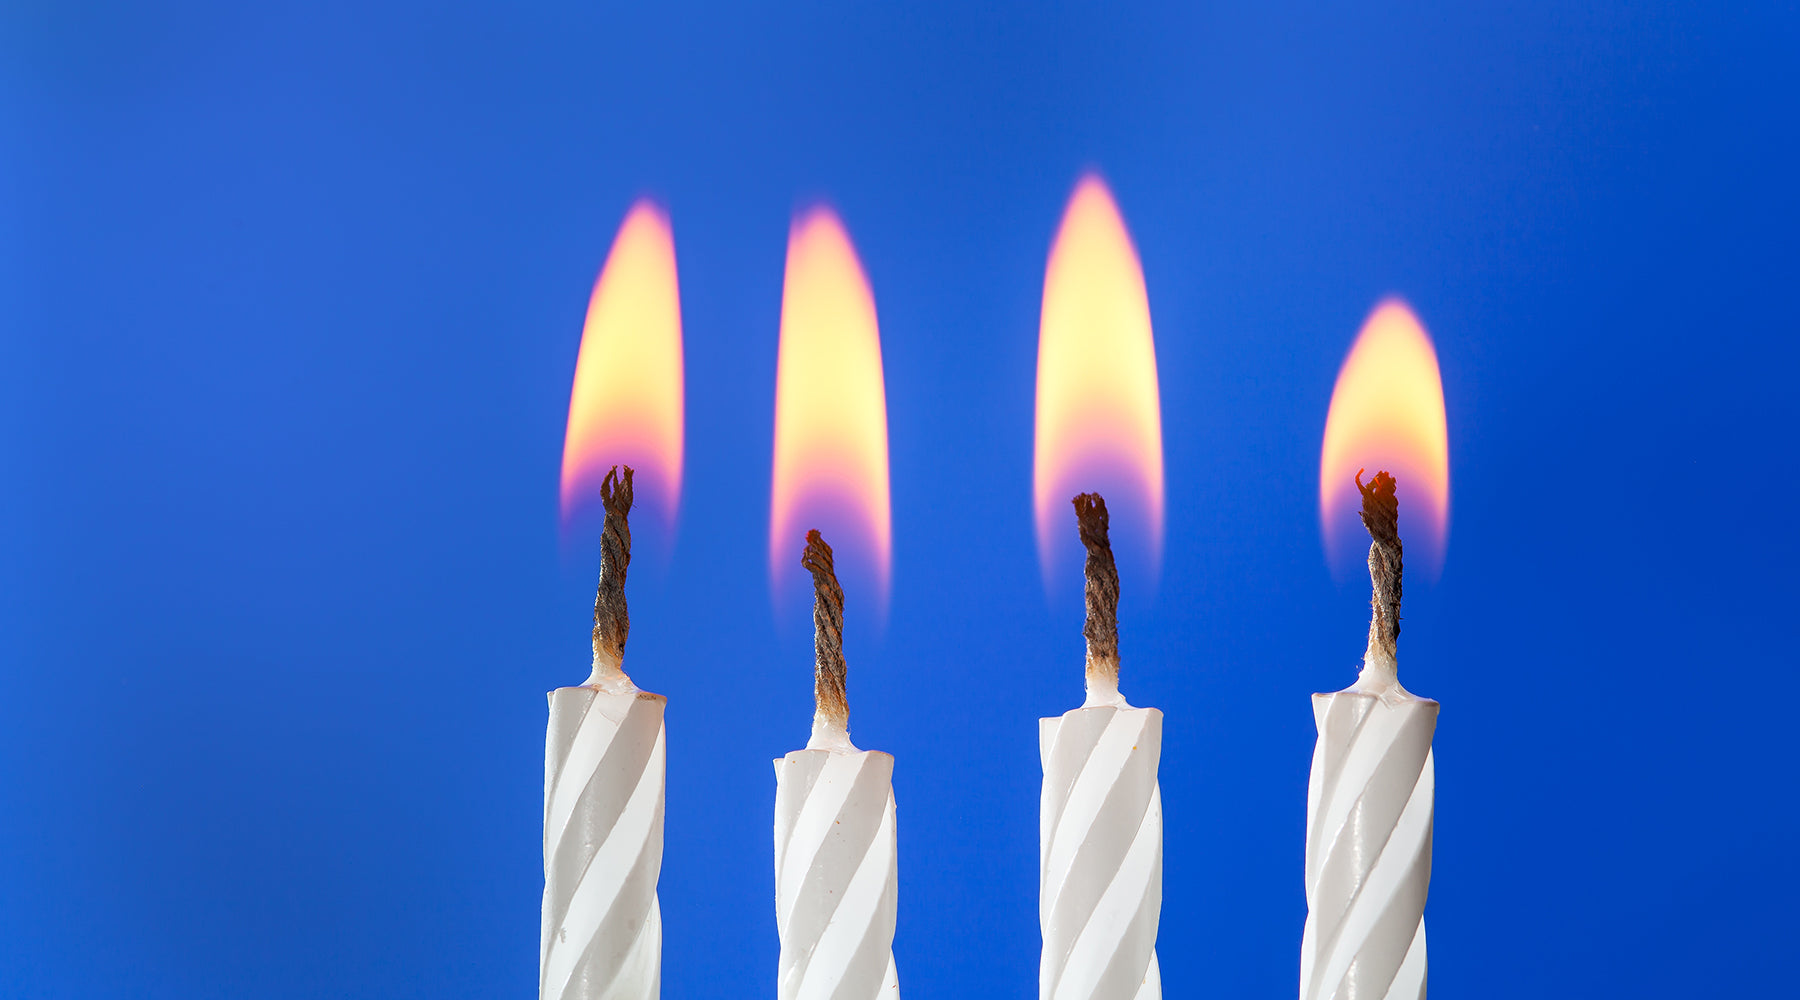 Four white cake candles burning in a row | Nikki Darling Australia